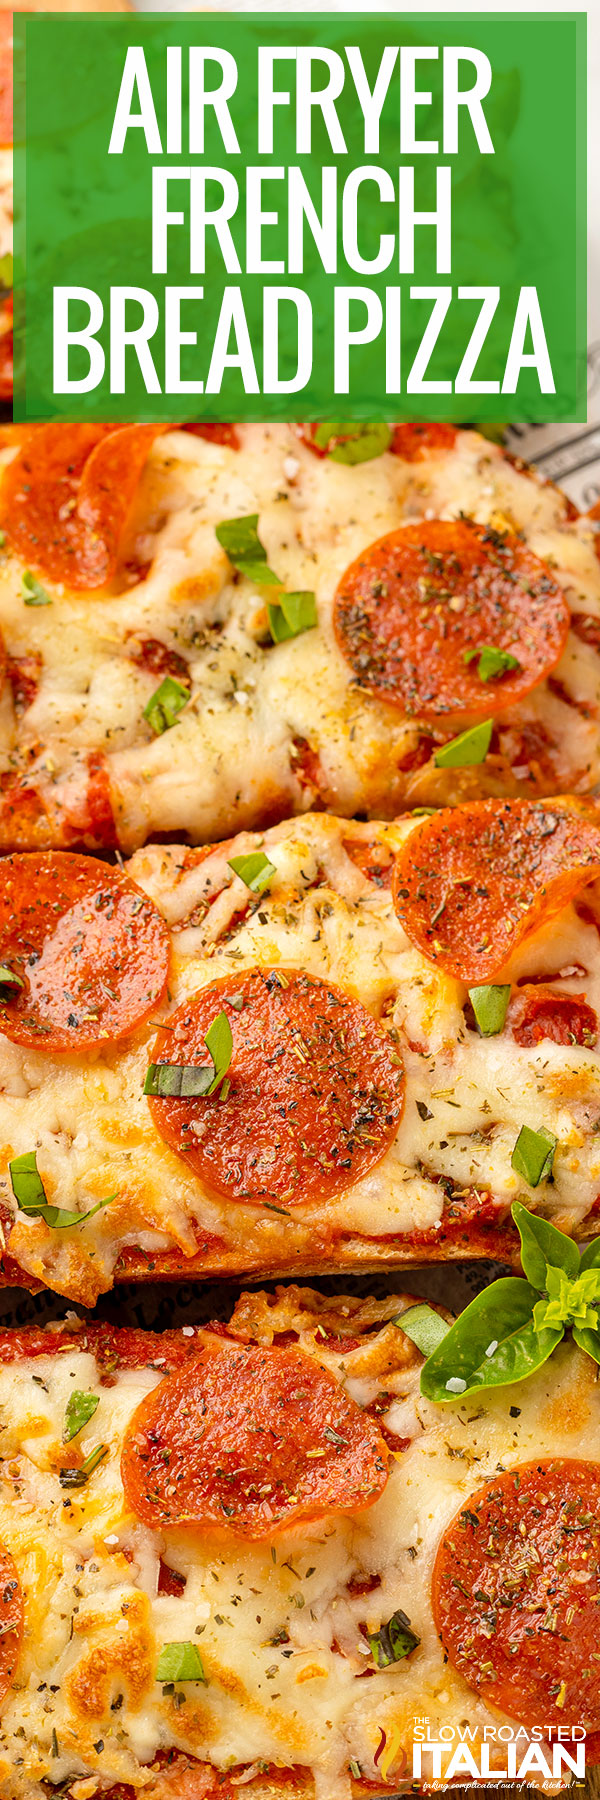 french bread pizza close up